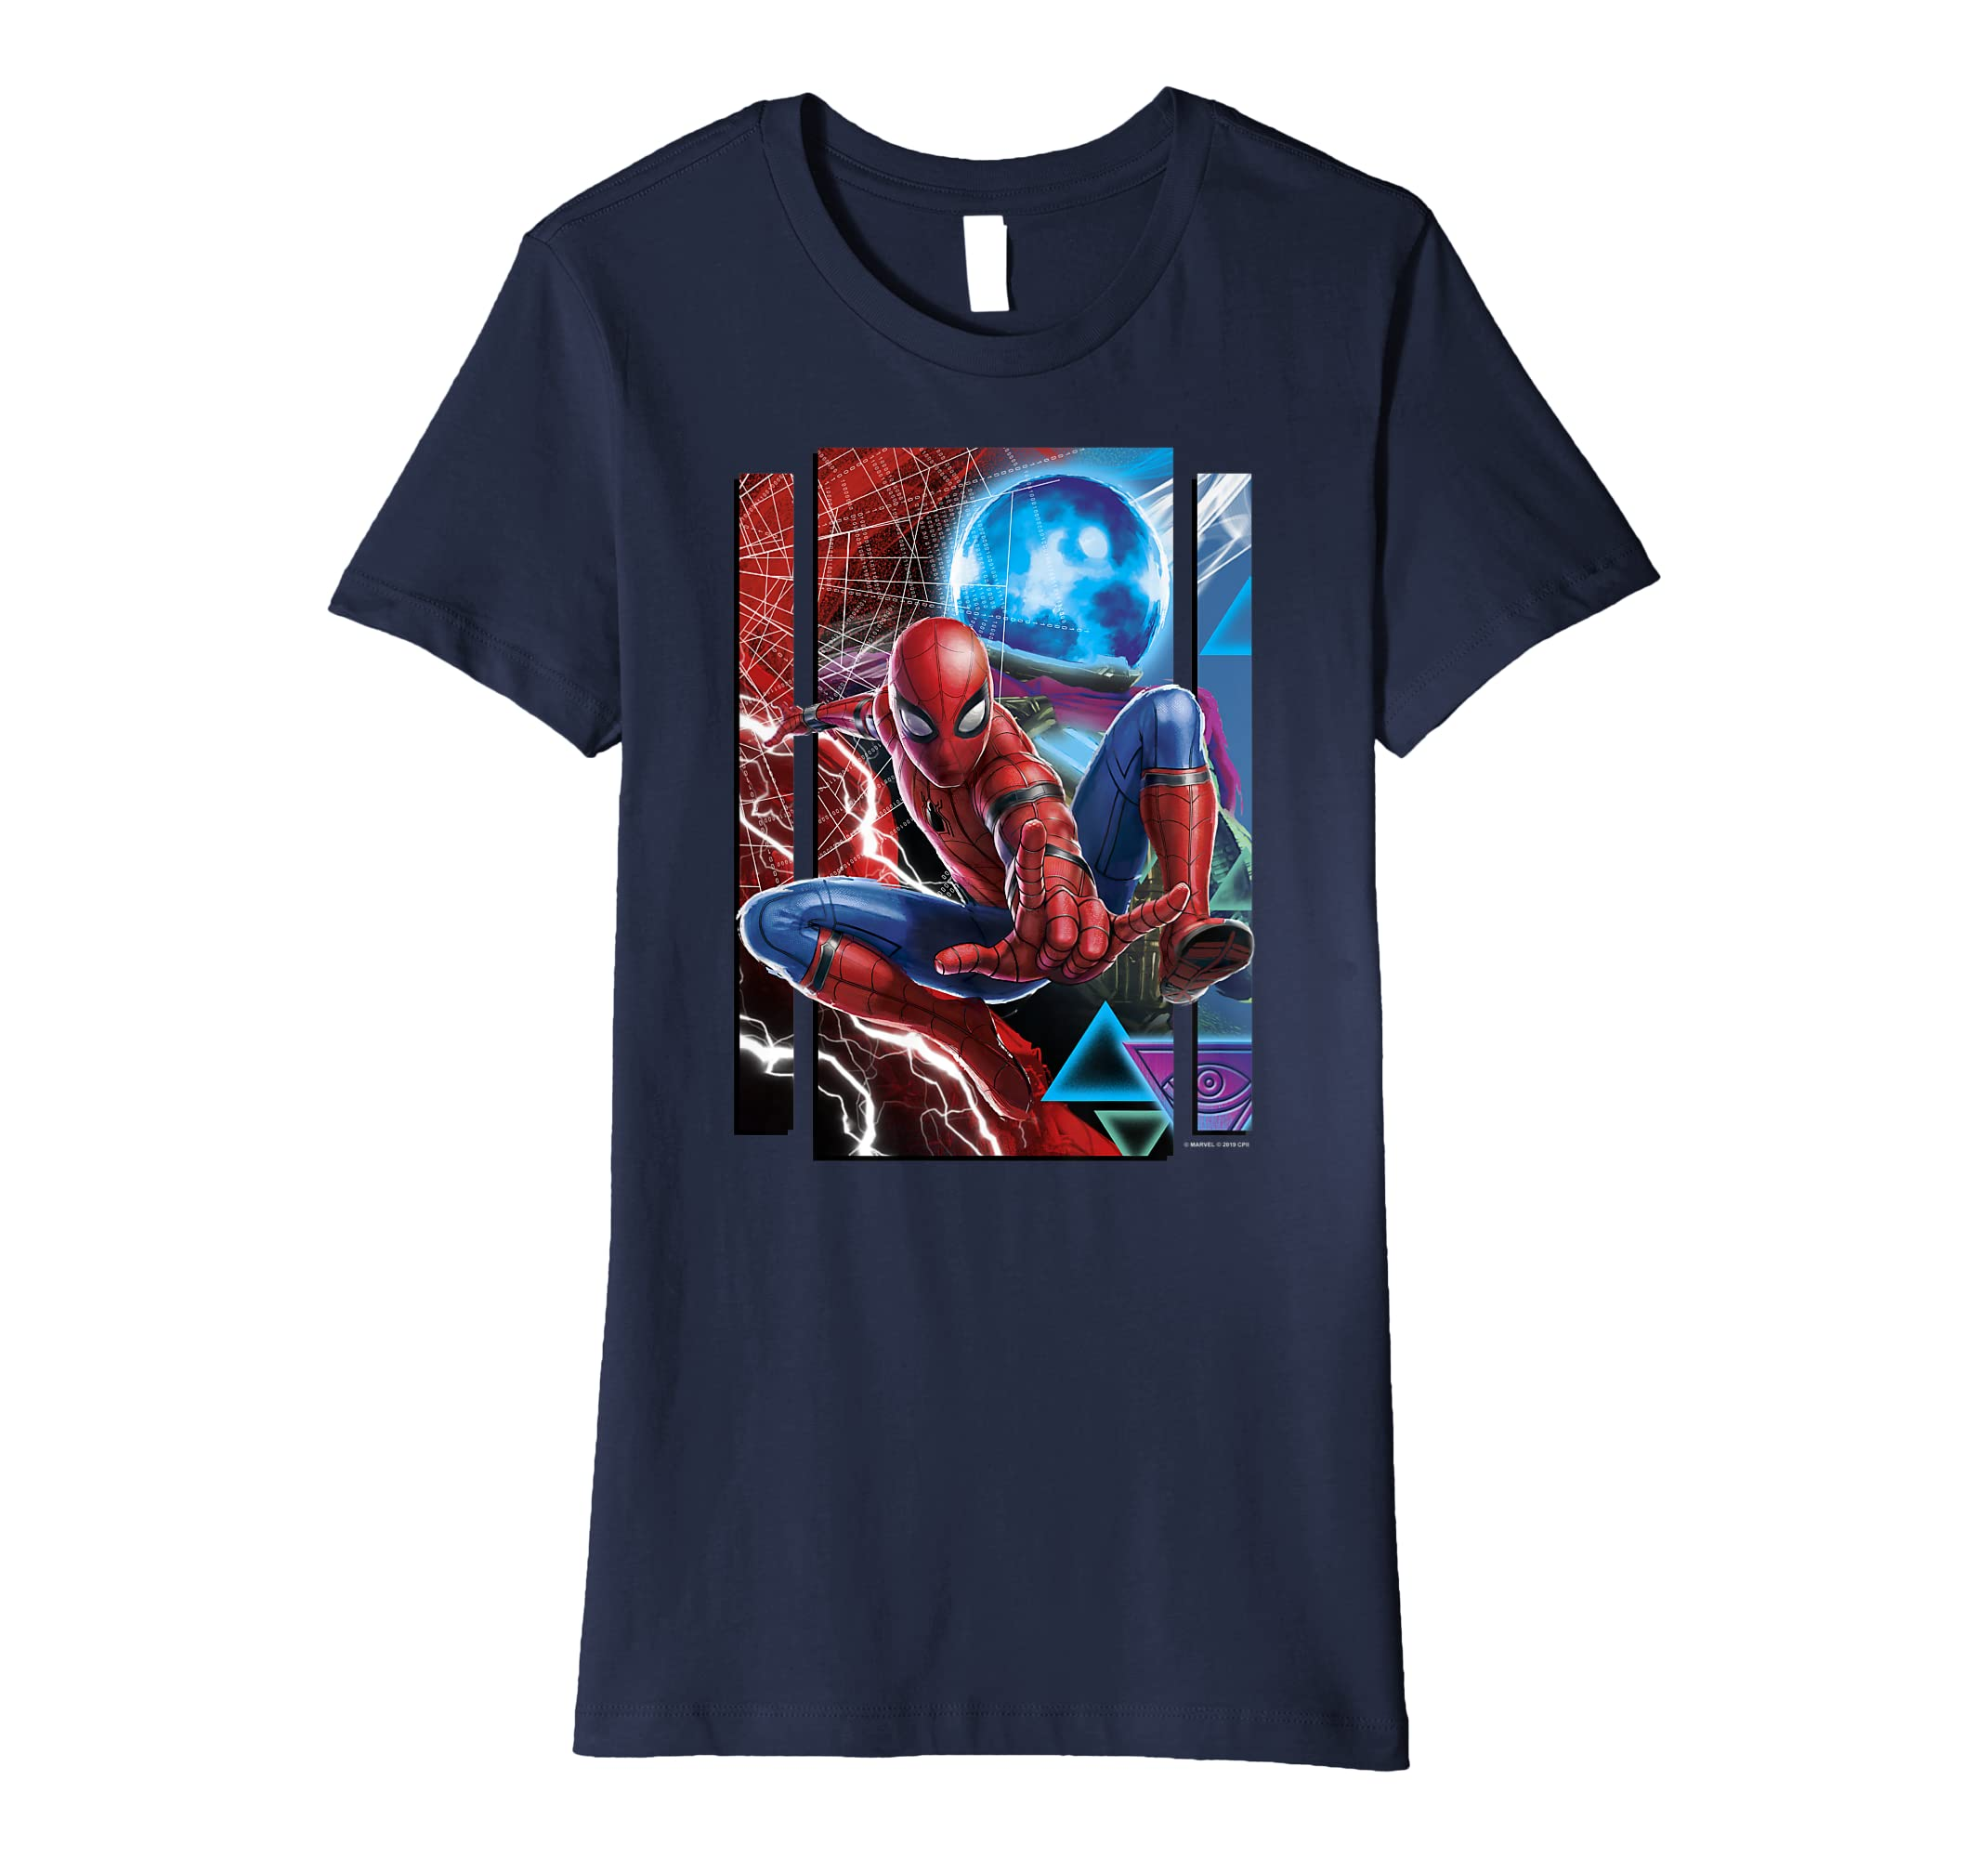 95910b458 Amazon.com: Marvel Spider-Man Far From Home Mysterio And Spidey Portrait  Premium T-Shirt: Clothing